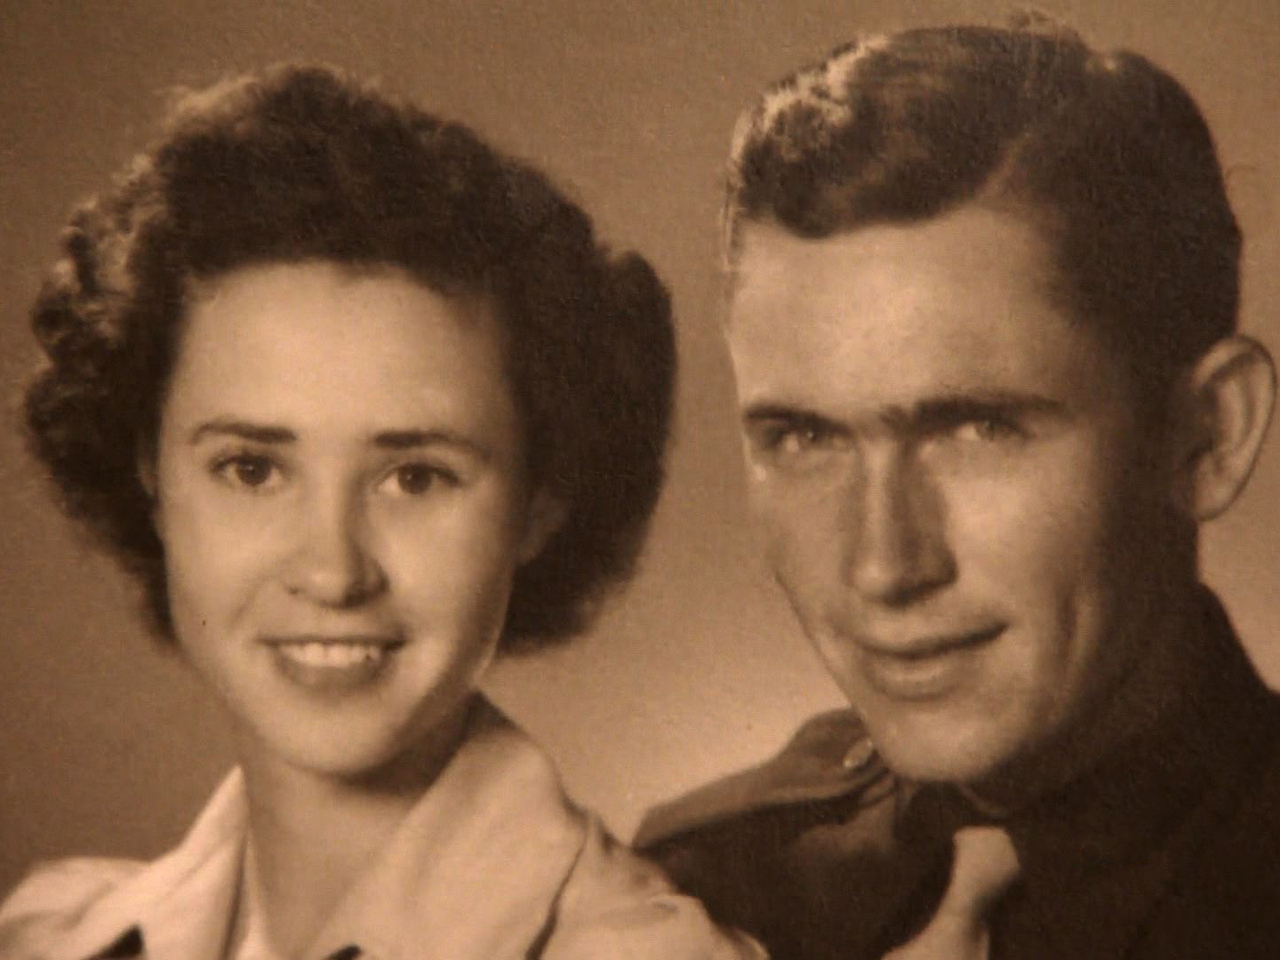 Astonishing Truth About War Hero Revealed in a Seventy-Year Love Story